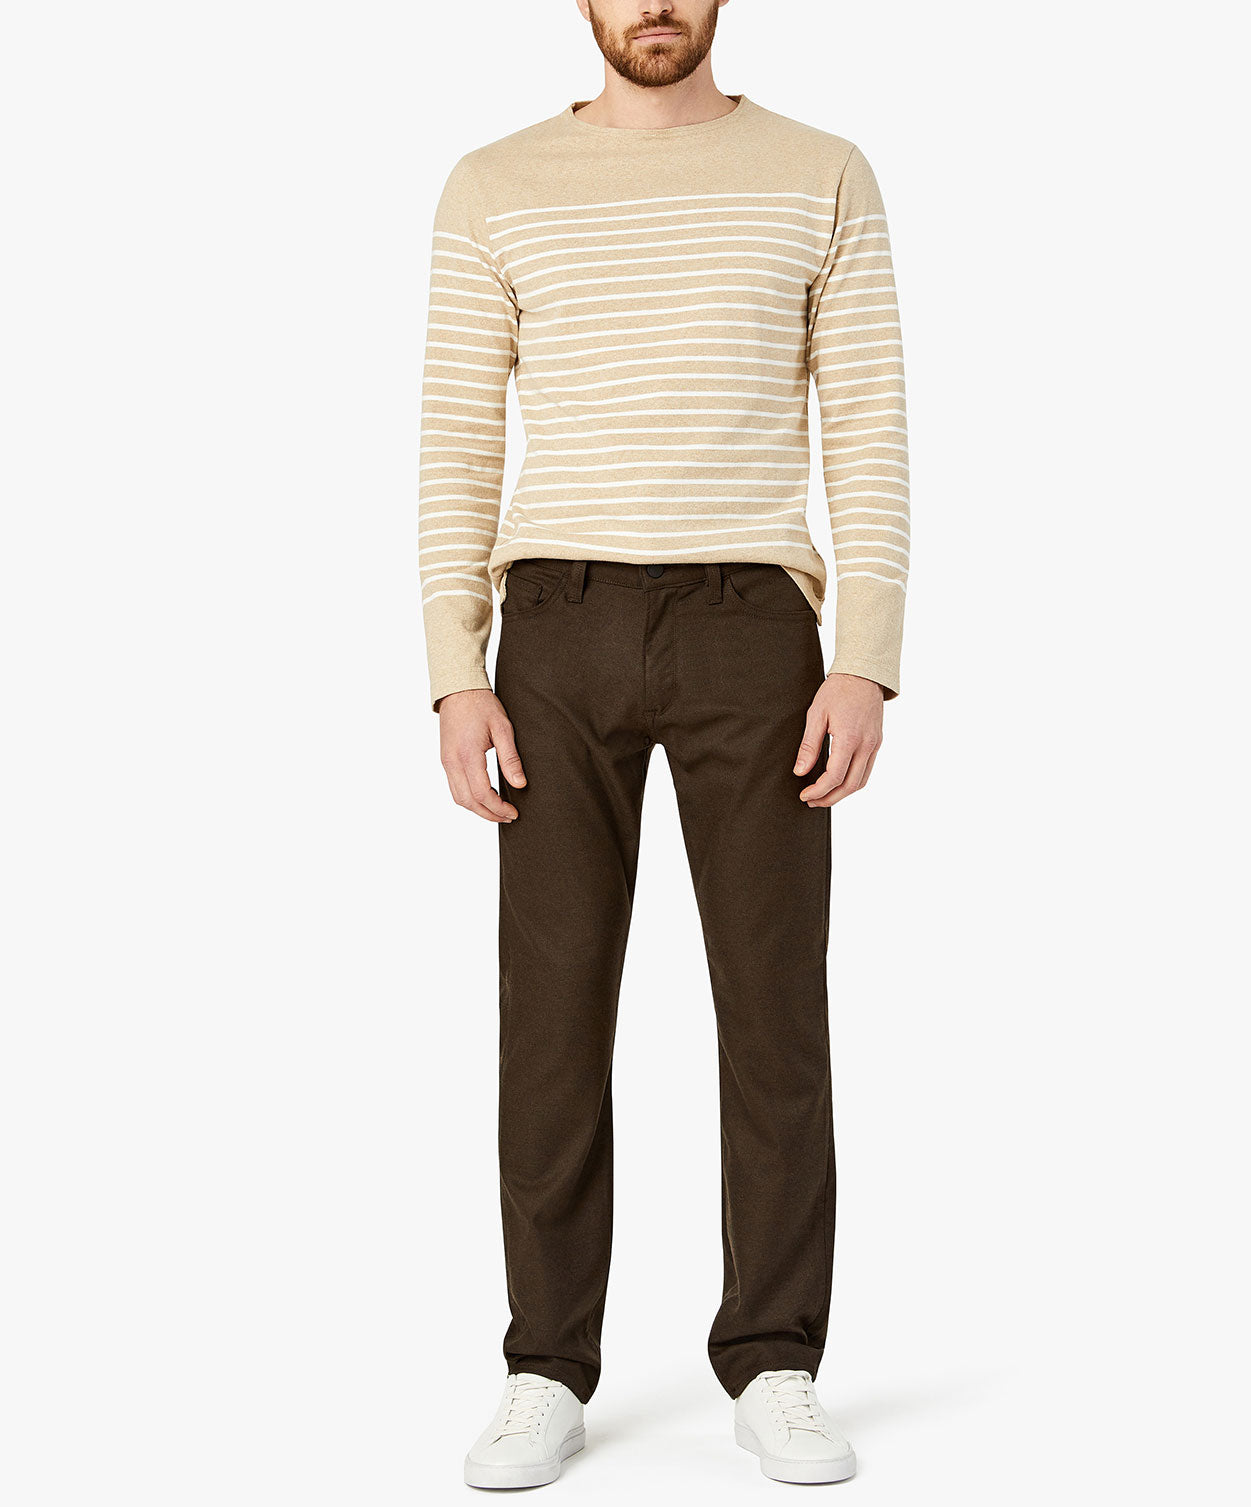 Courage Brown Supreme Leisure Pant